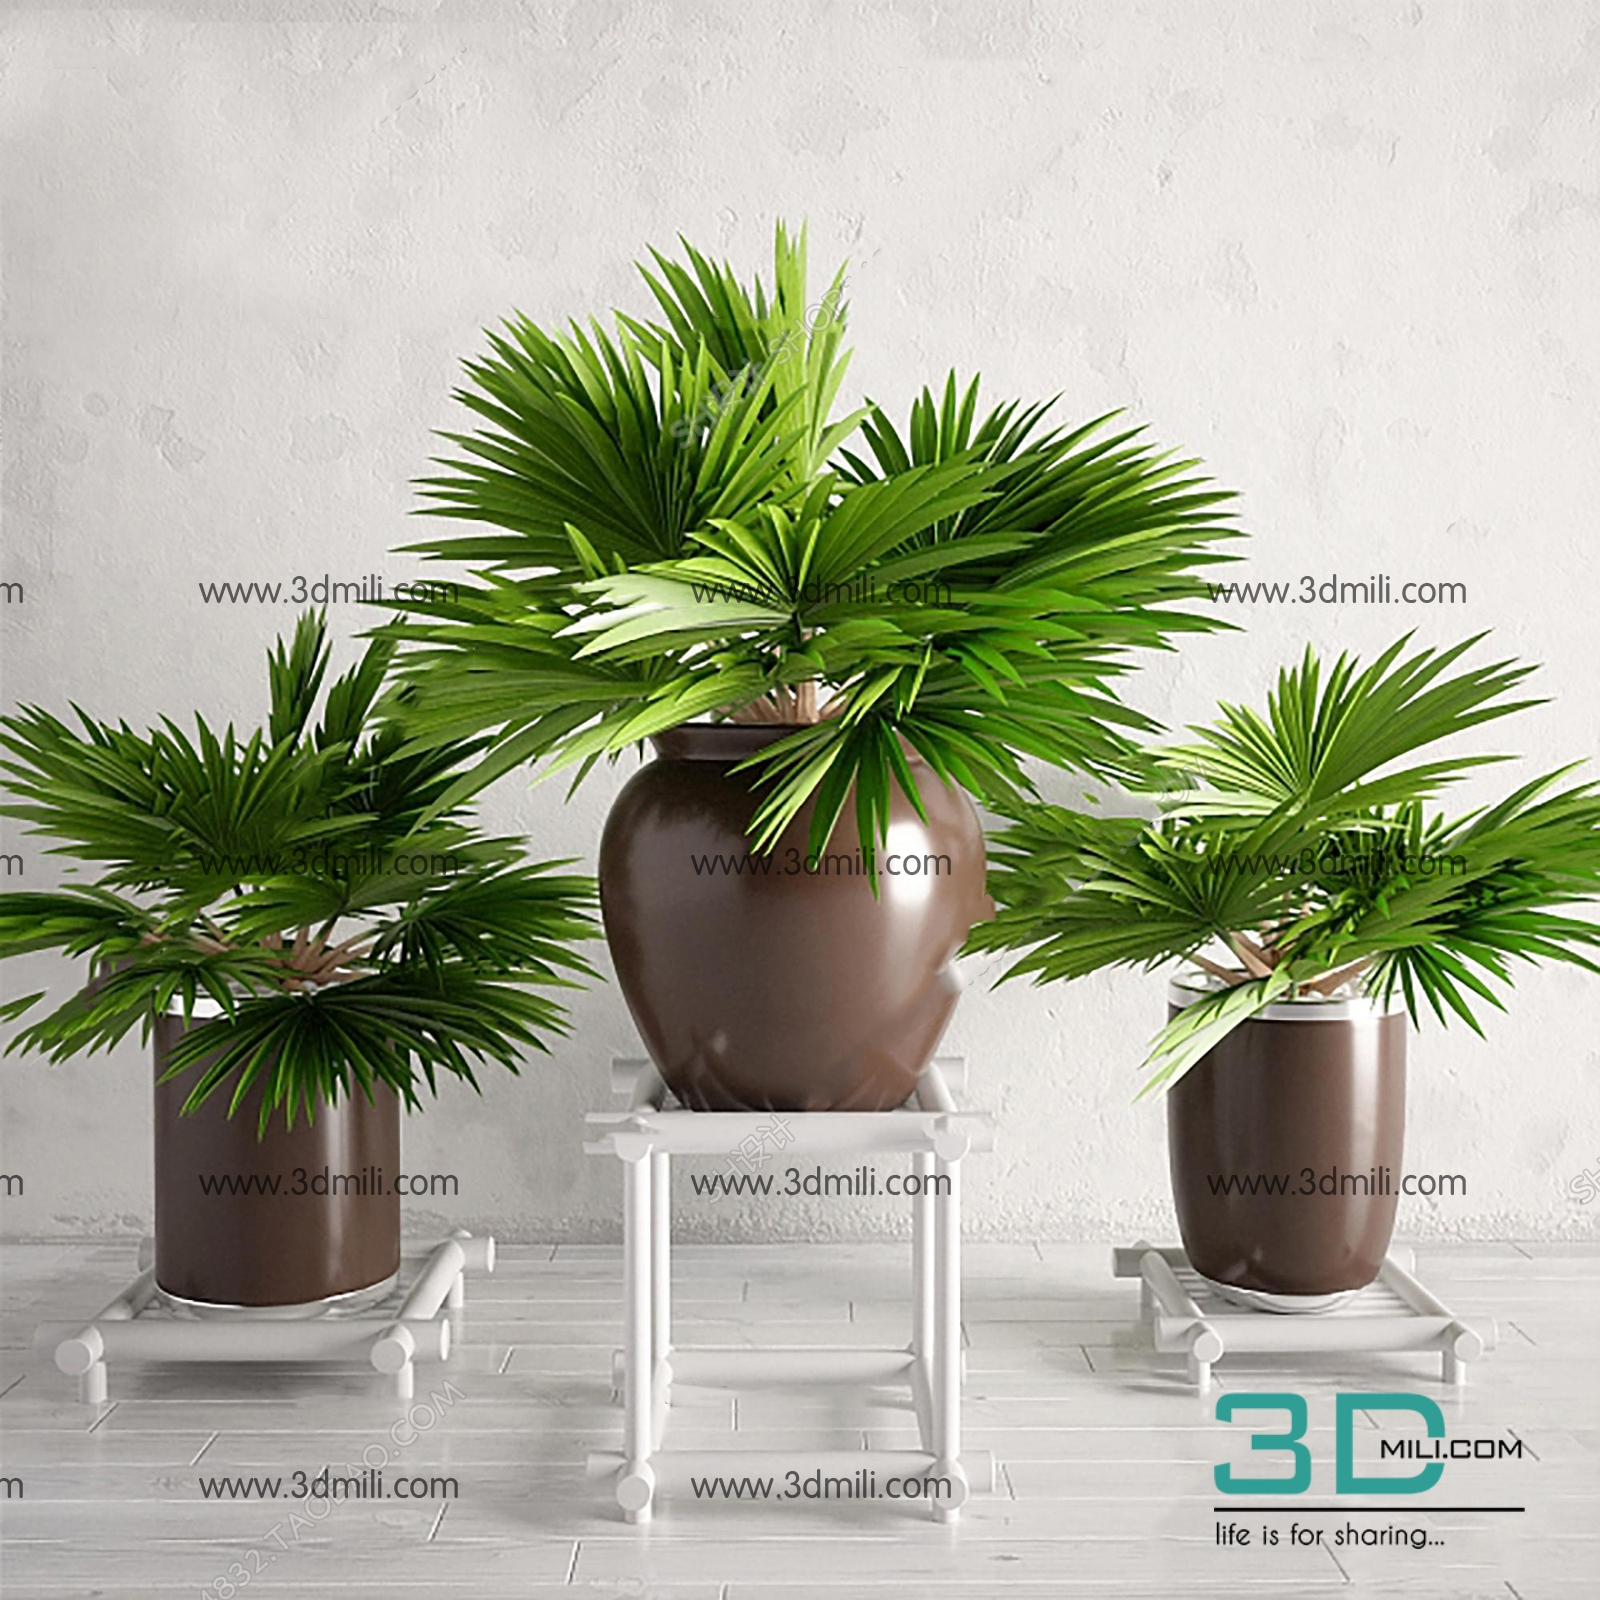 372  Plant 3dsmax Model Free Download - 3D Mili - Download 3D Model